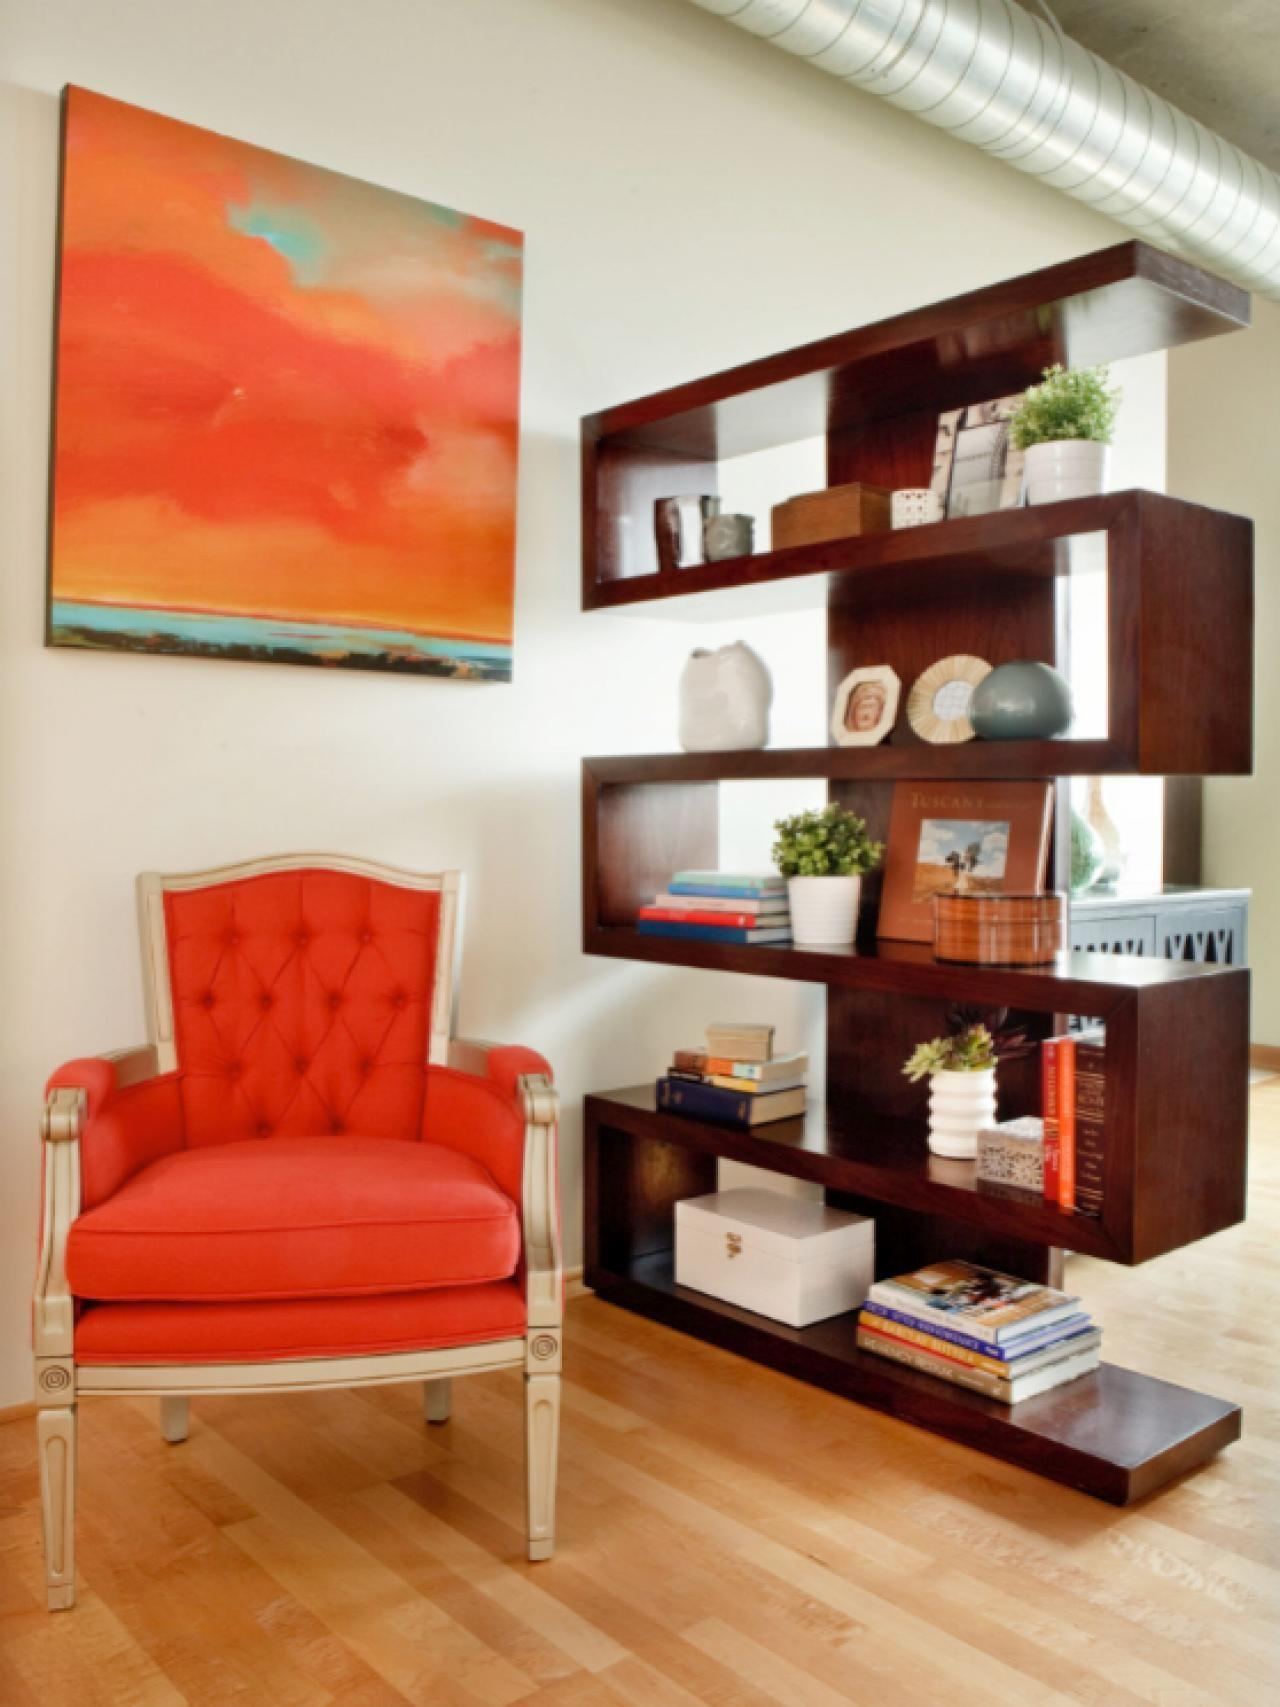 Make Space Clever Room Dividers Interior Design